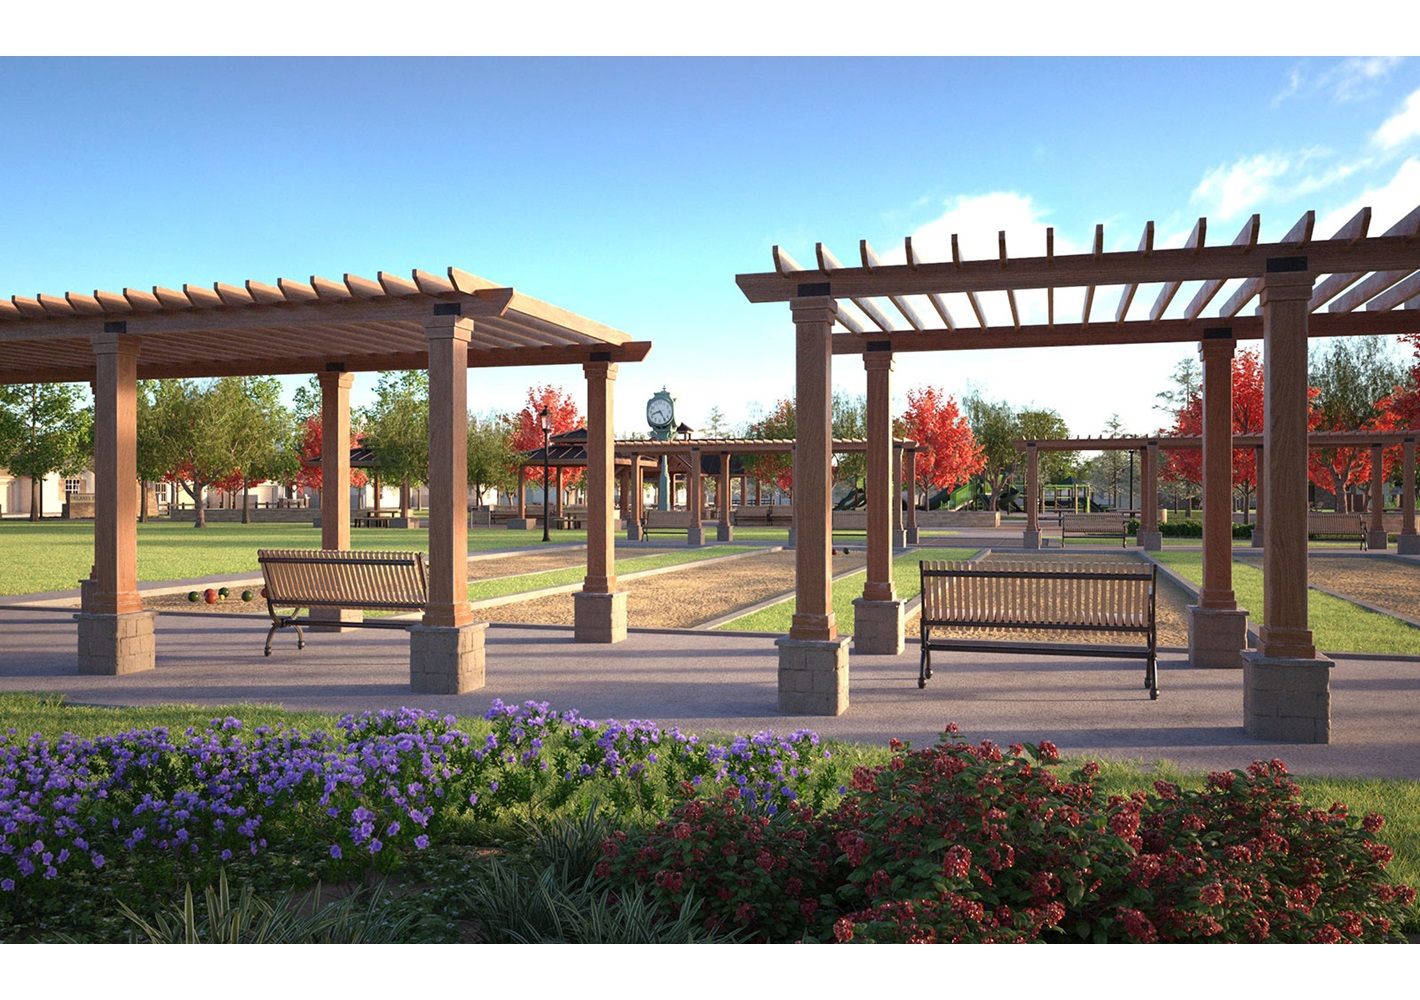 Rendering of the community park at the master-planned community of Delaney Park in Oakland, CA